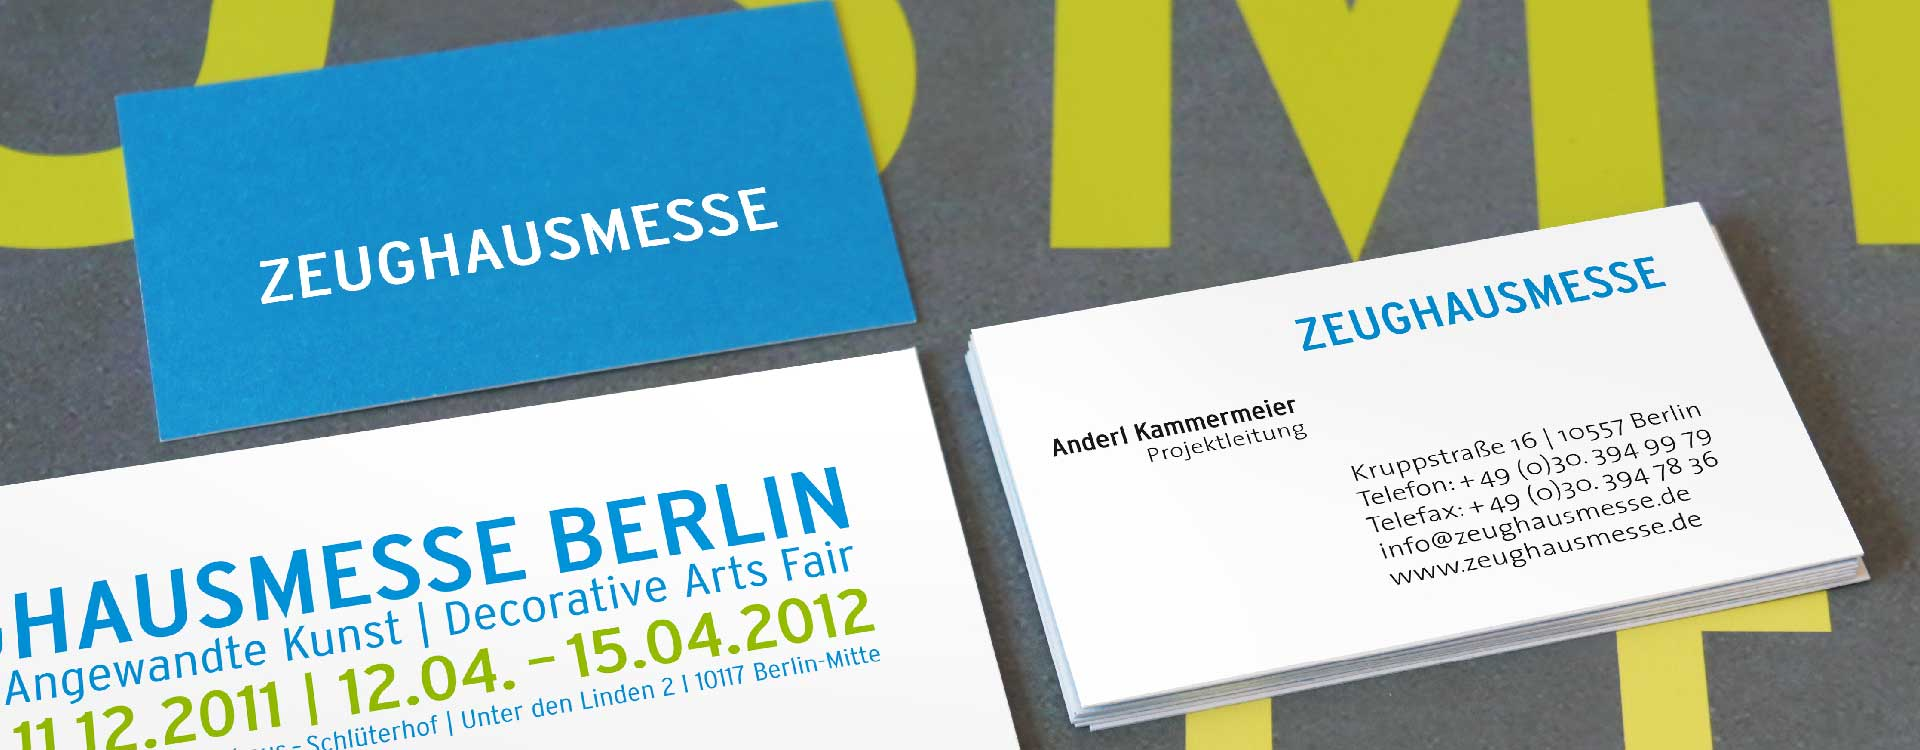 Business card and mailing card of Zeughausmesse; Design: Kattrin Richter | Graphic Design Studio